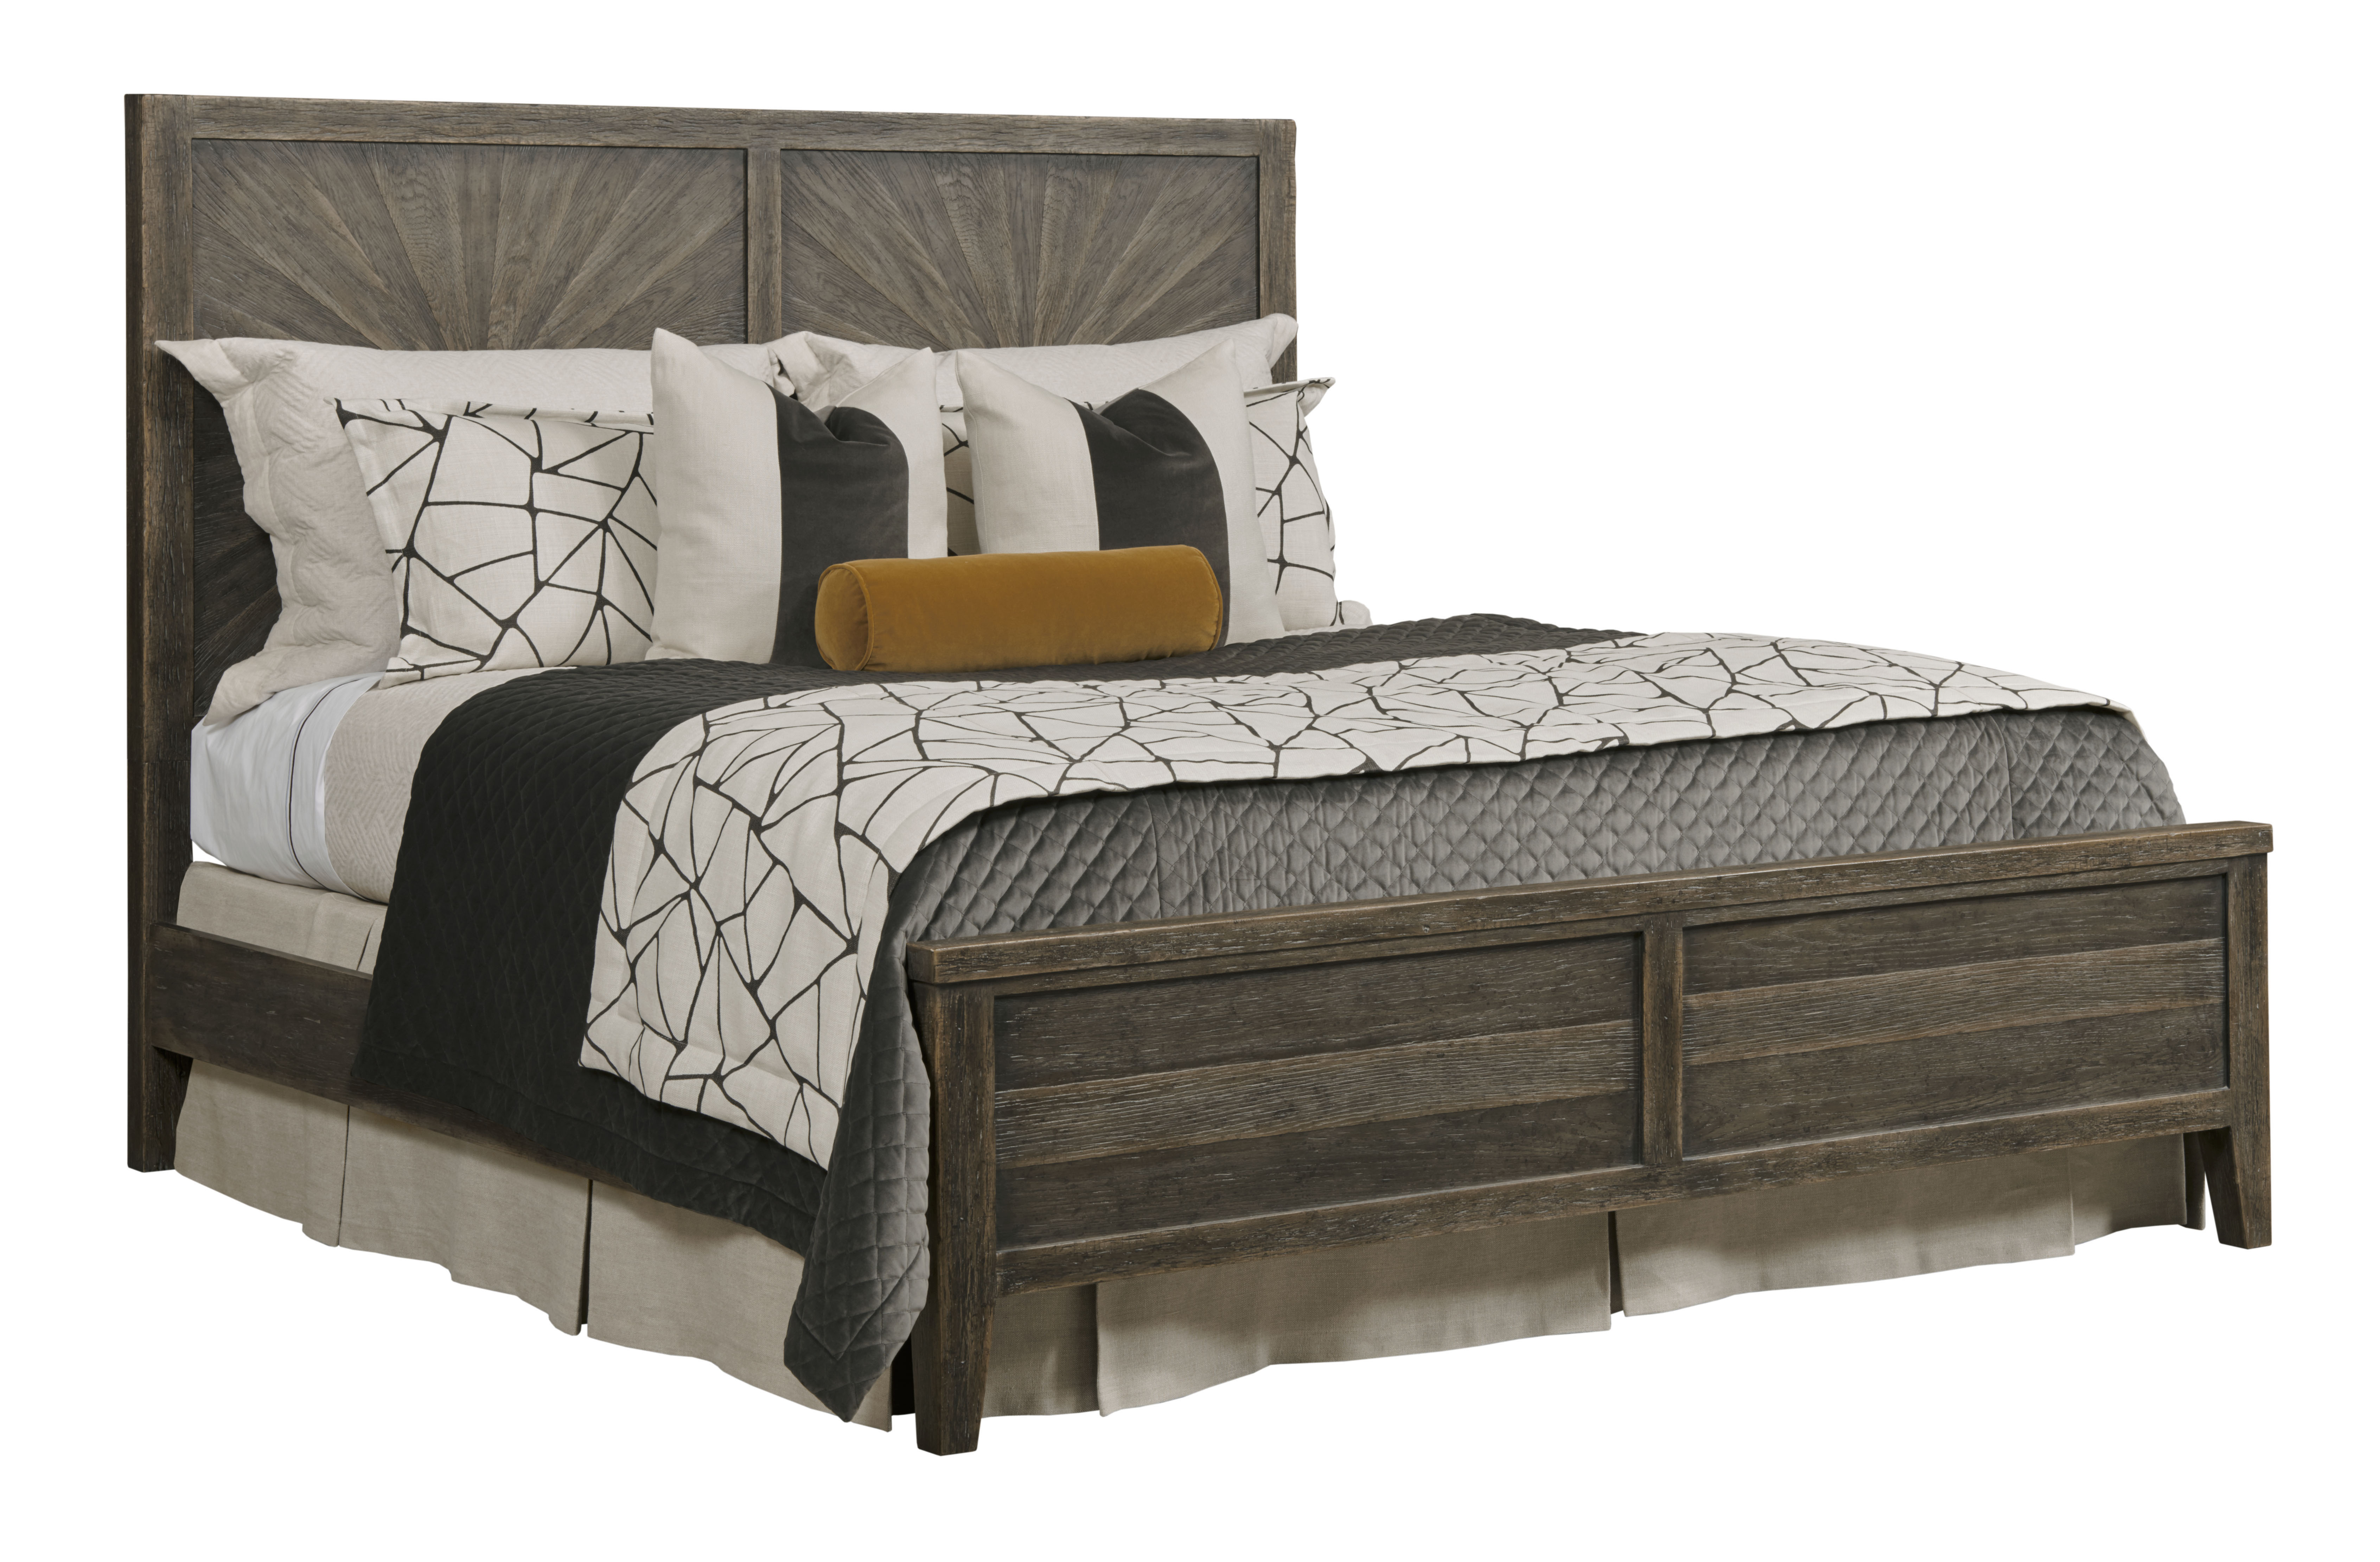 Emporium King Bed by American Drew at Stoney Creek Furniture